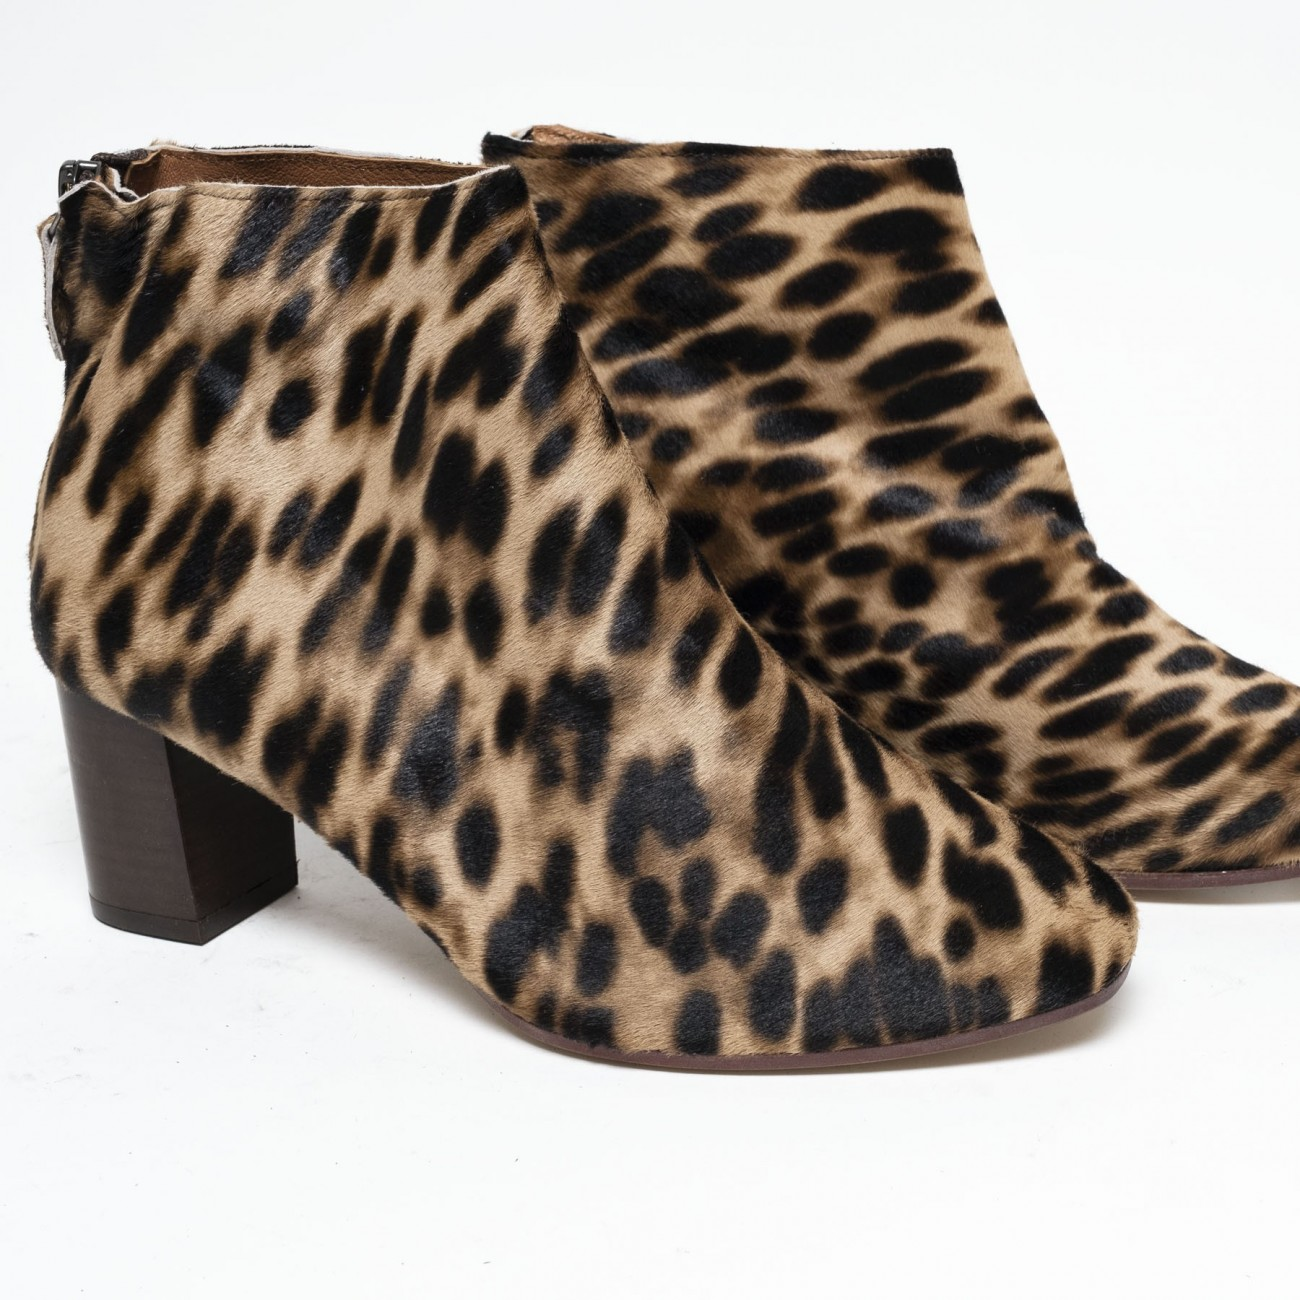 Miley 55 Calf hair Leopard Tan - Size 38